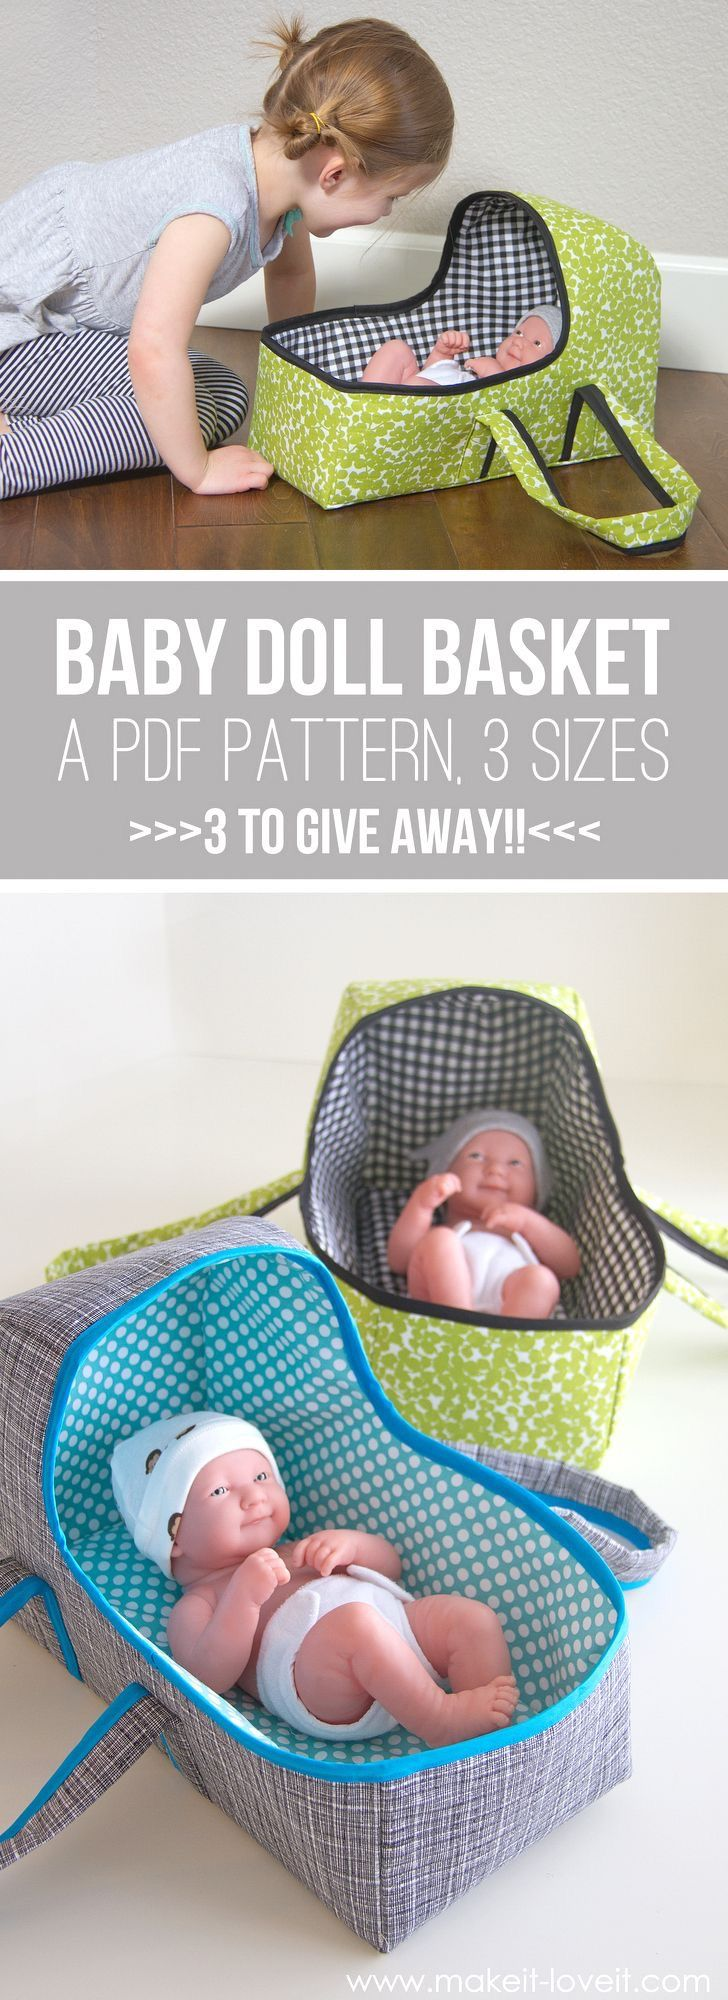 Sweet doll carrier for the little ones in you life.